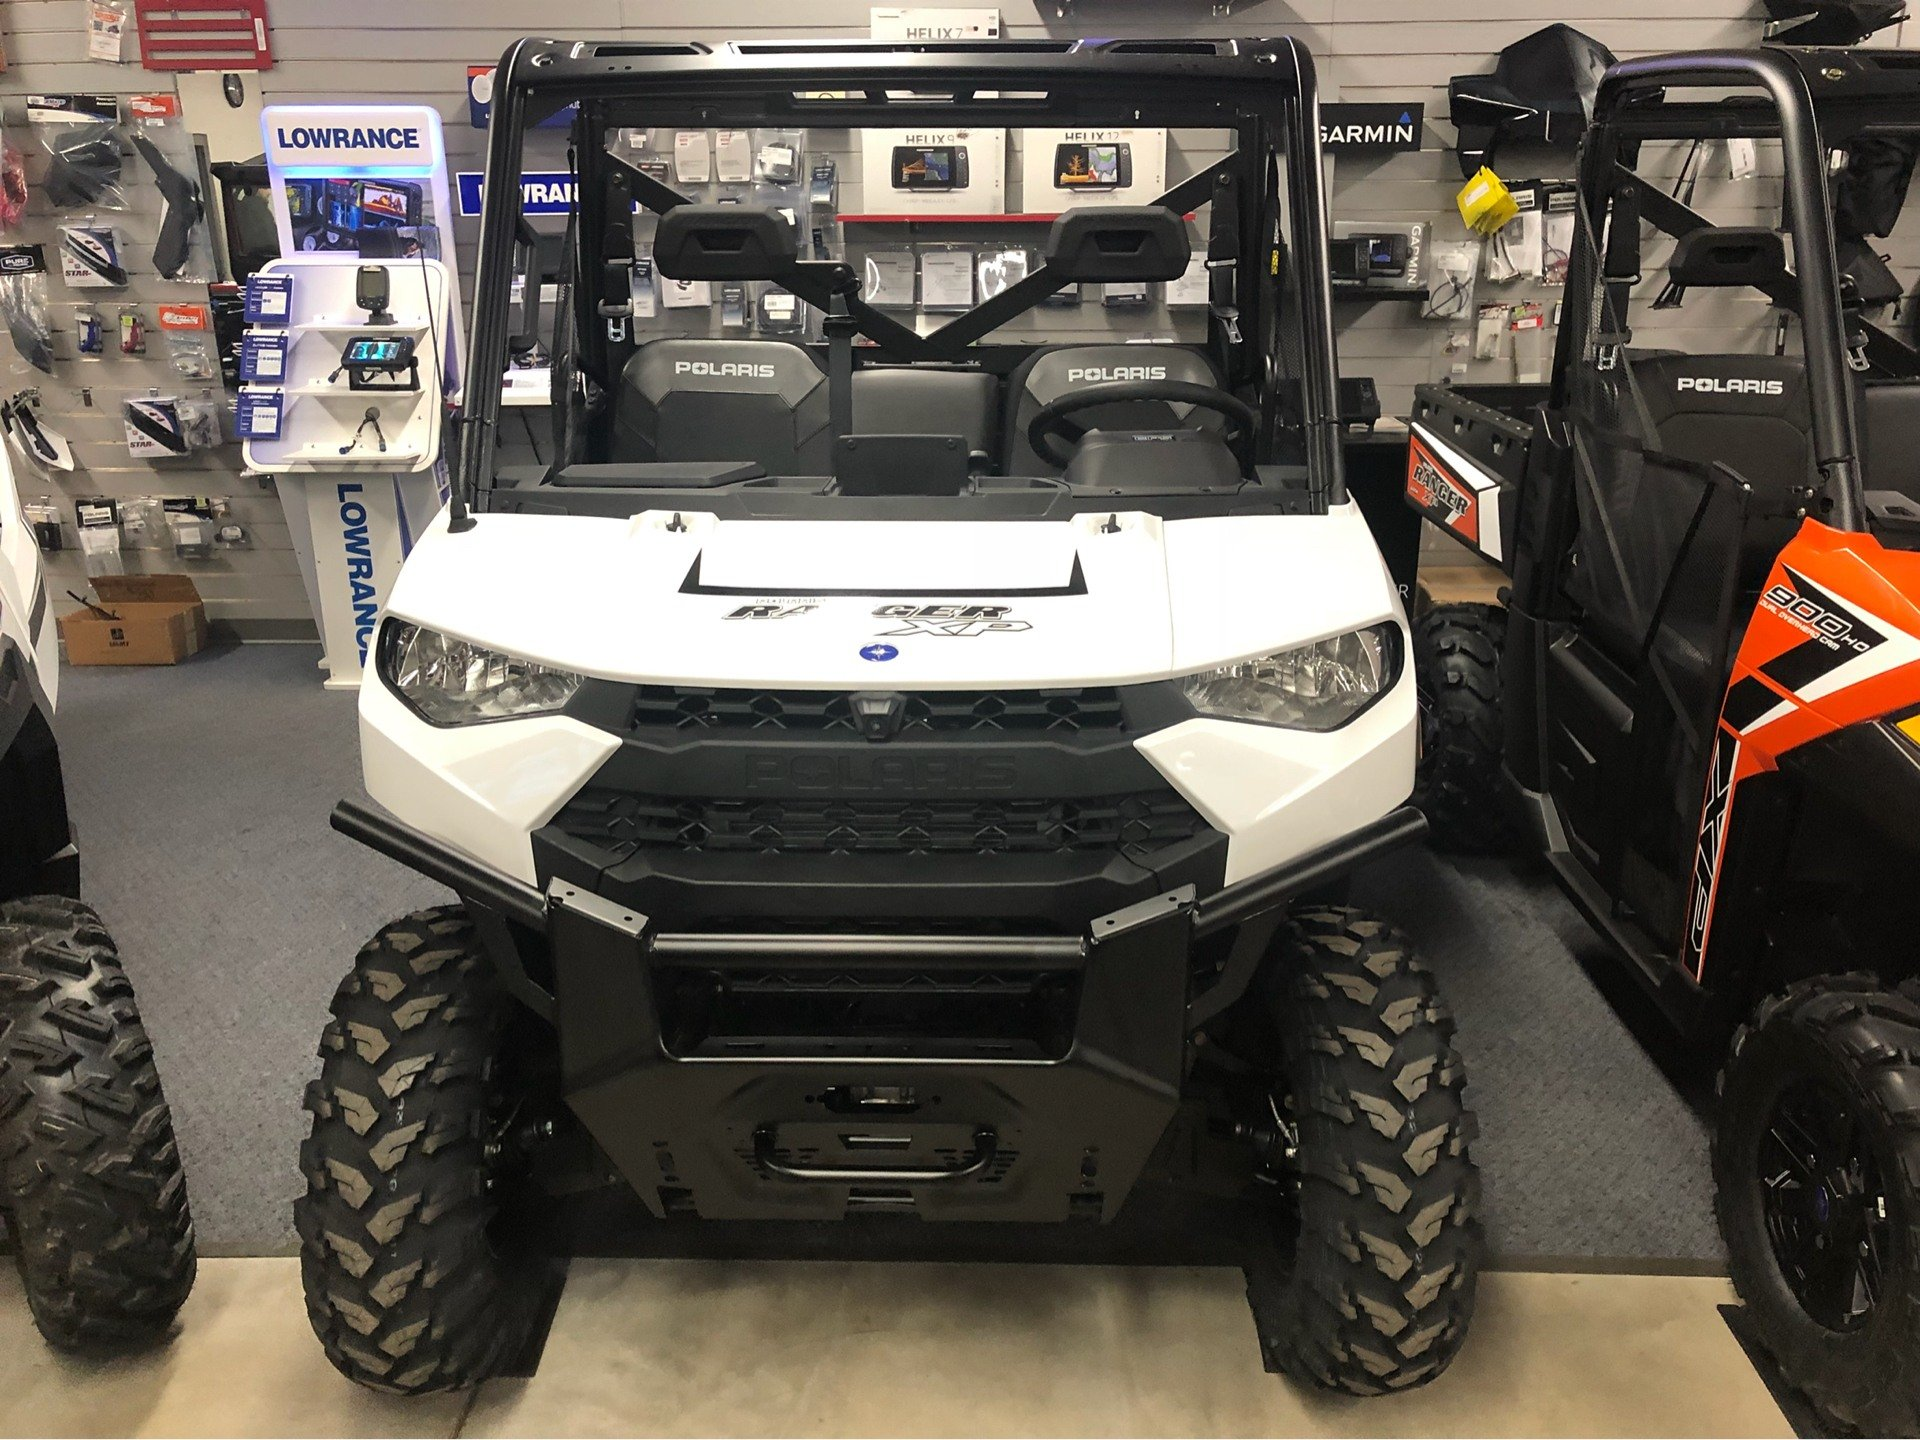 2019 Polaris Ranger XP 1000 EPS Ride Command in Appleton, Wisconsin - Photo 2